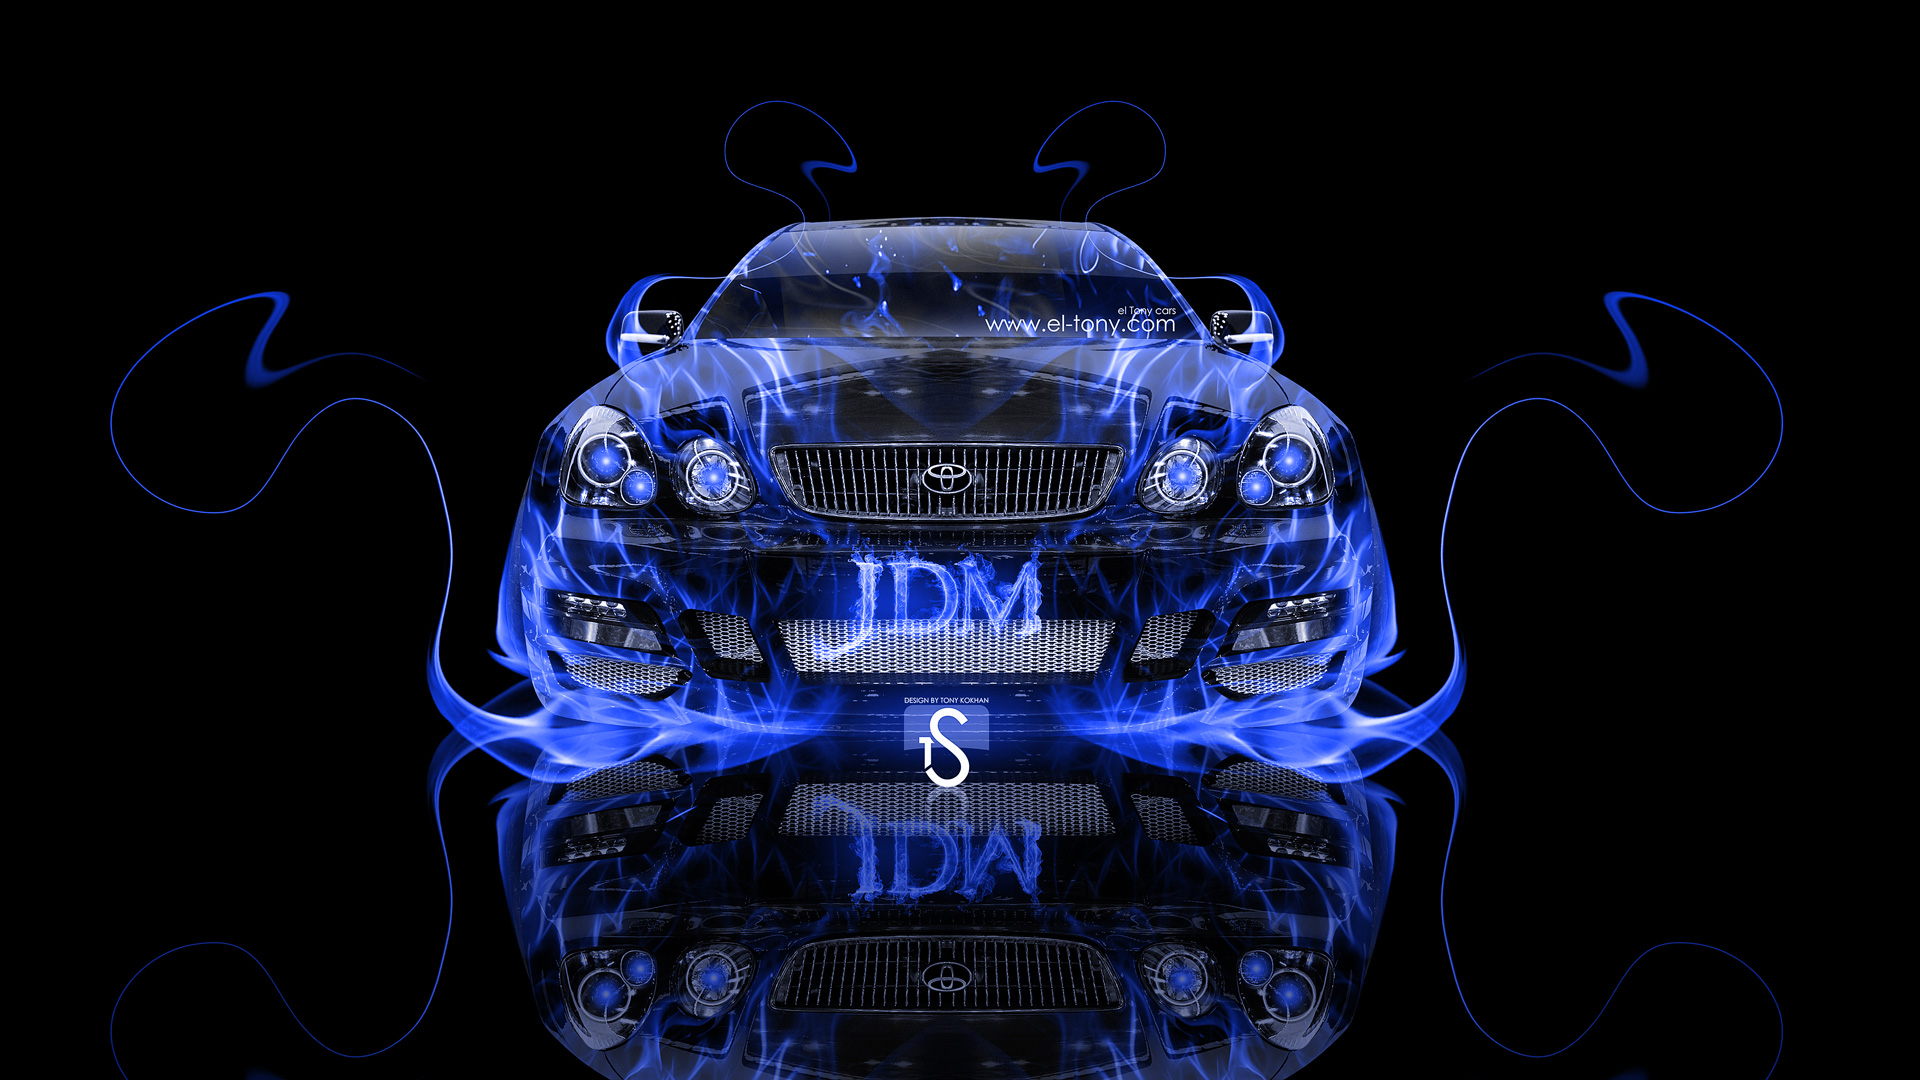 Merveilleux Toyota Aristo JDM Front Blue Fire Abstract Car